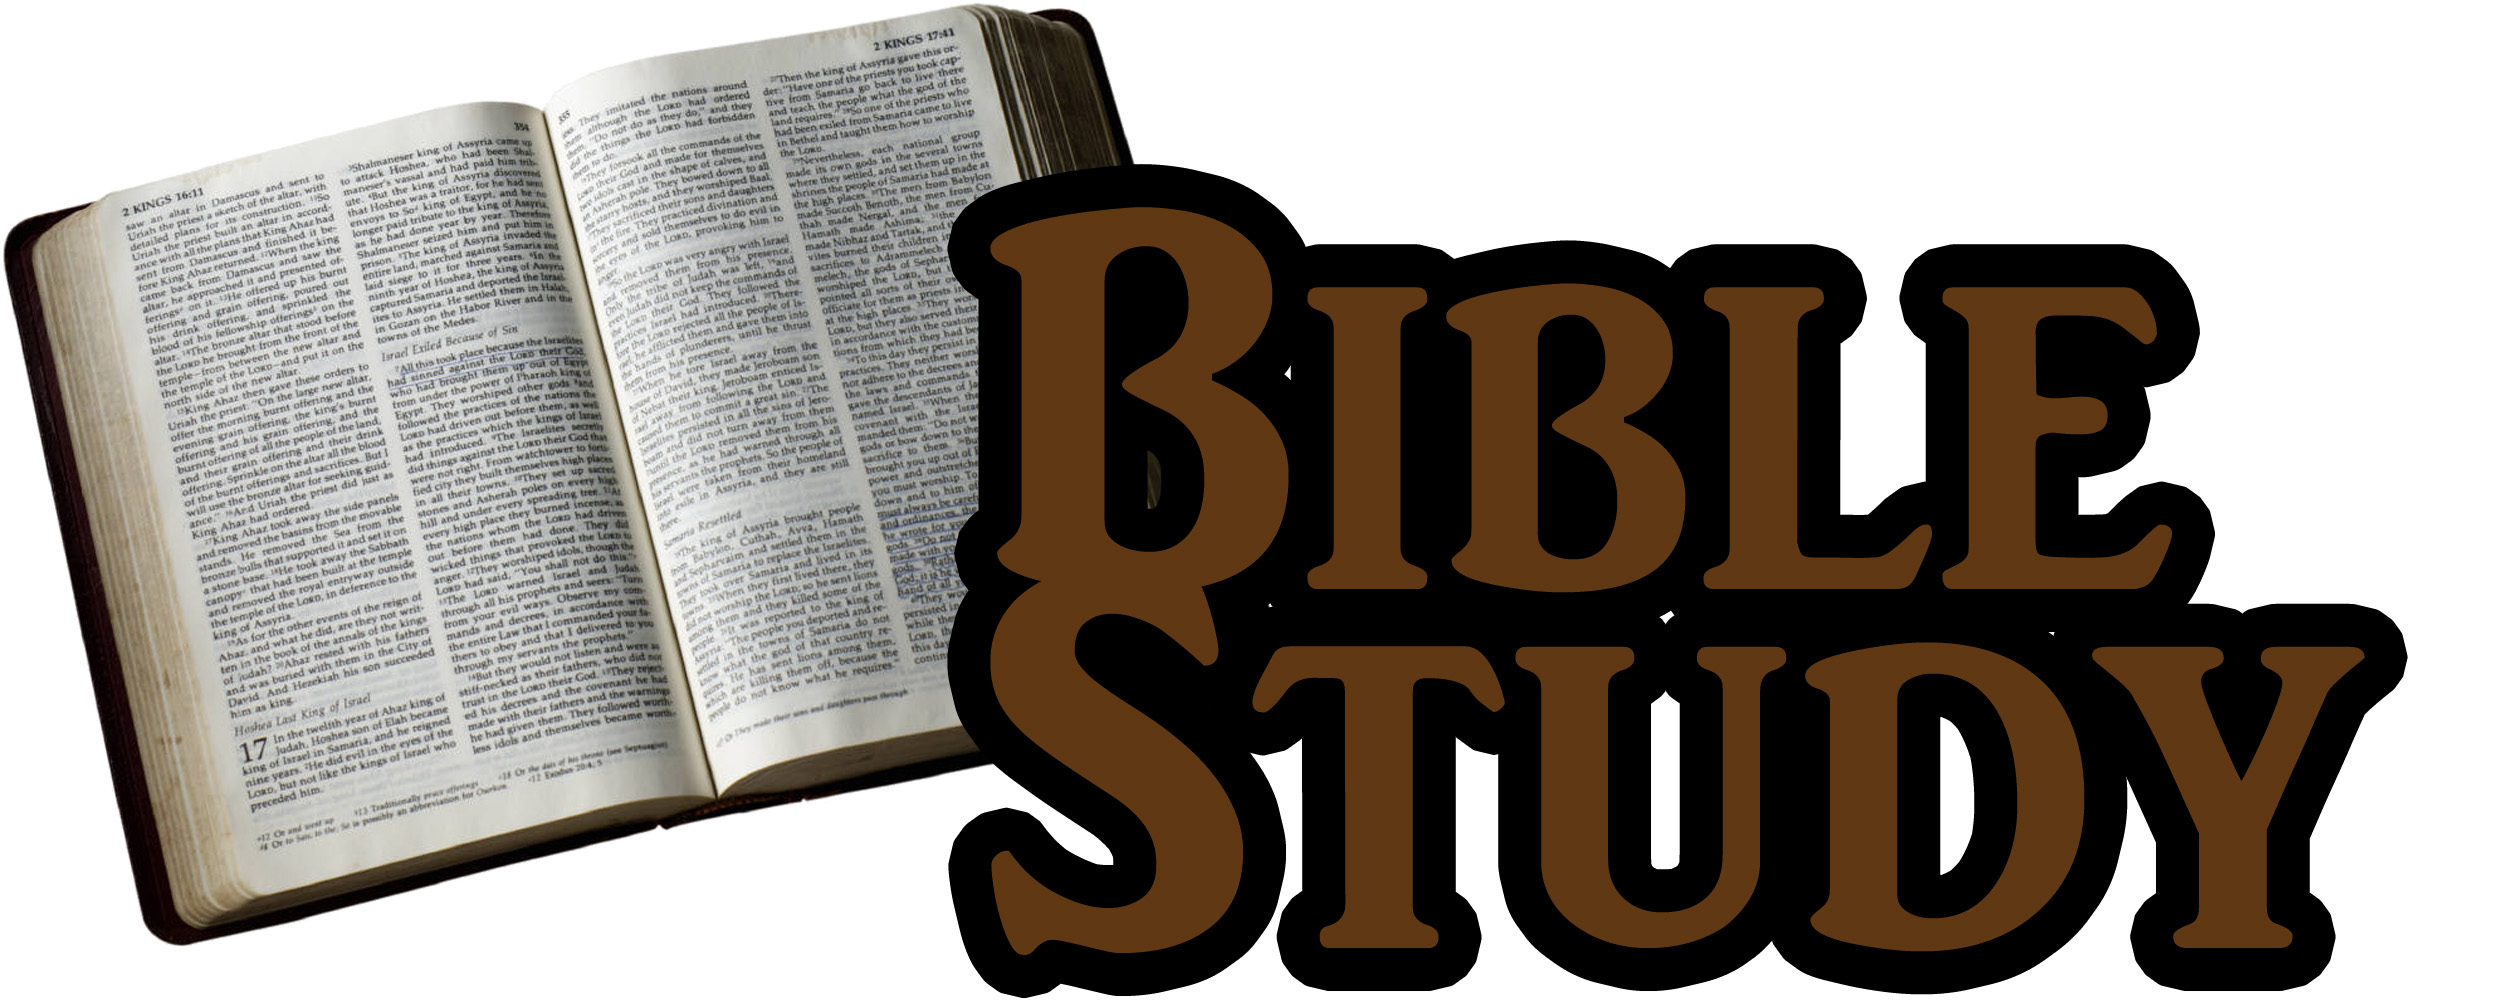 Bible illustrations and clipart (23,861) - Can Stock Photo